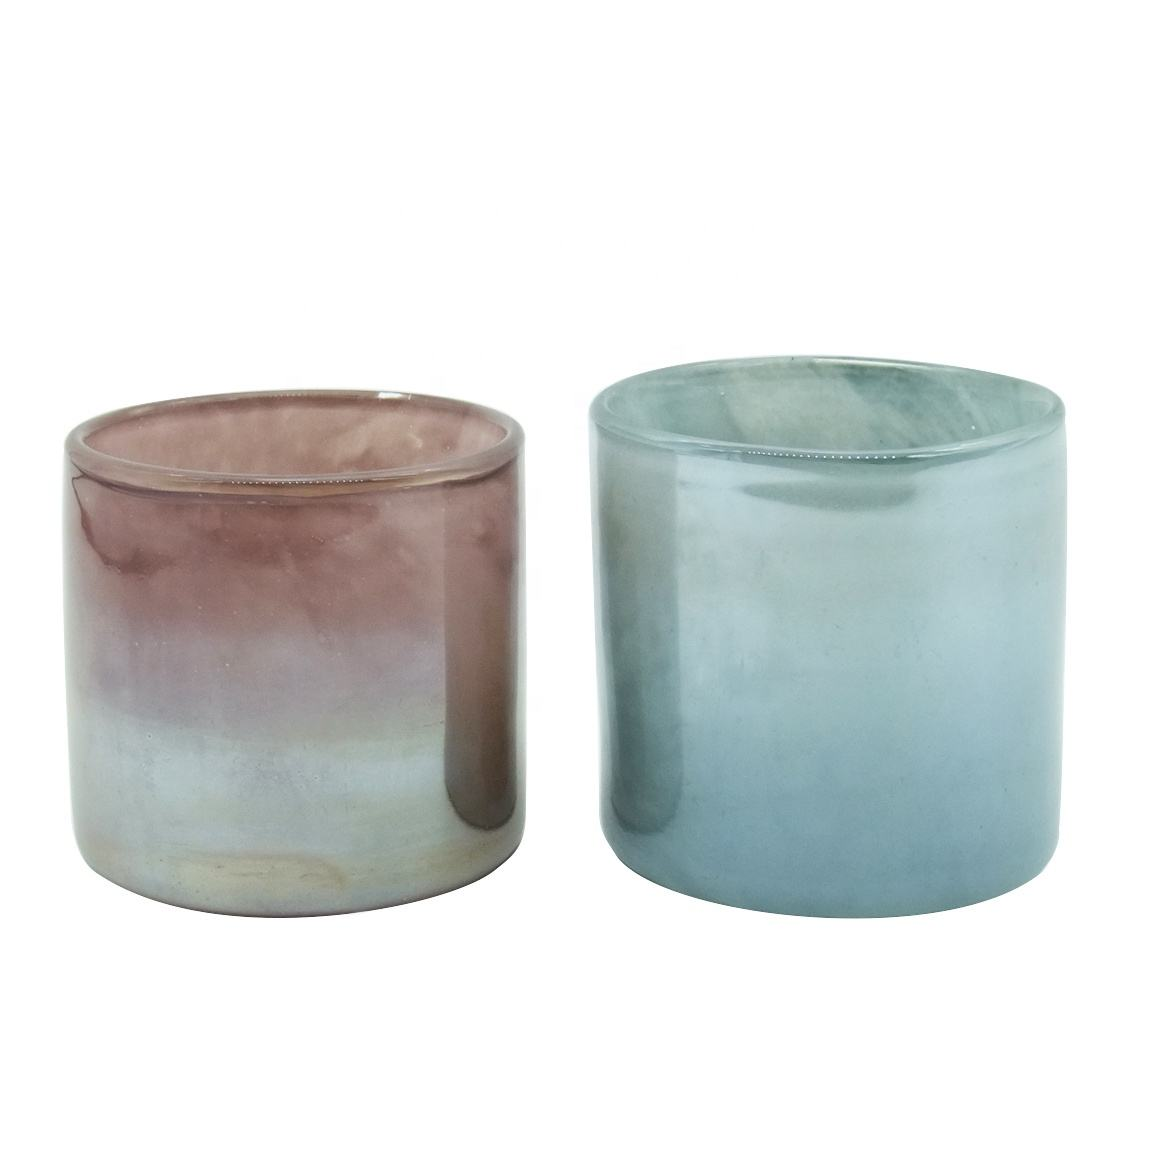 Haodexin luxury round candle holders custom glass candle holders for parties